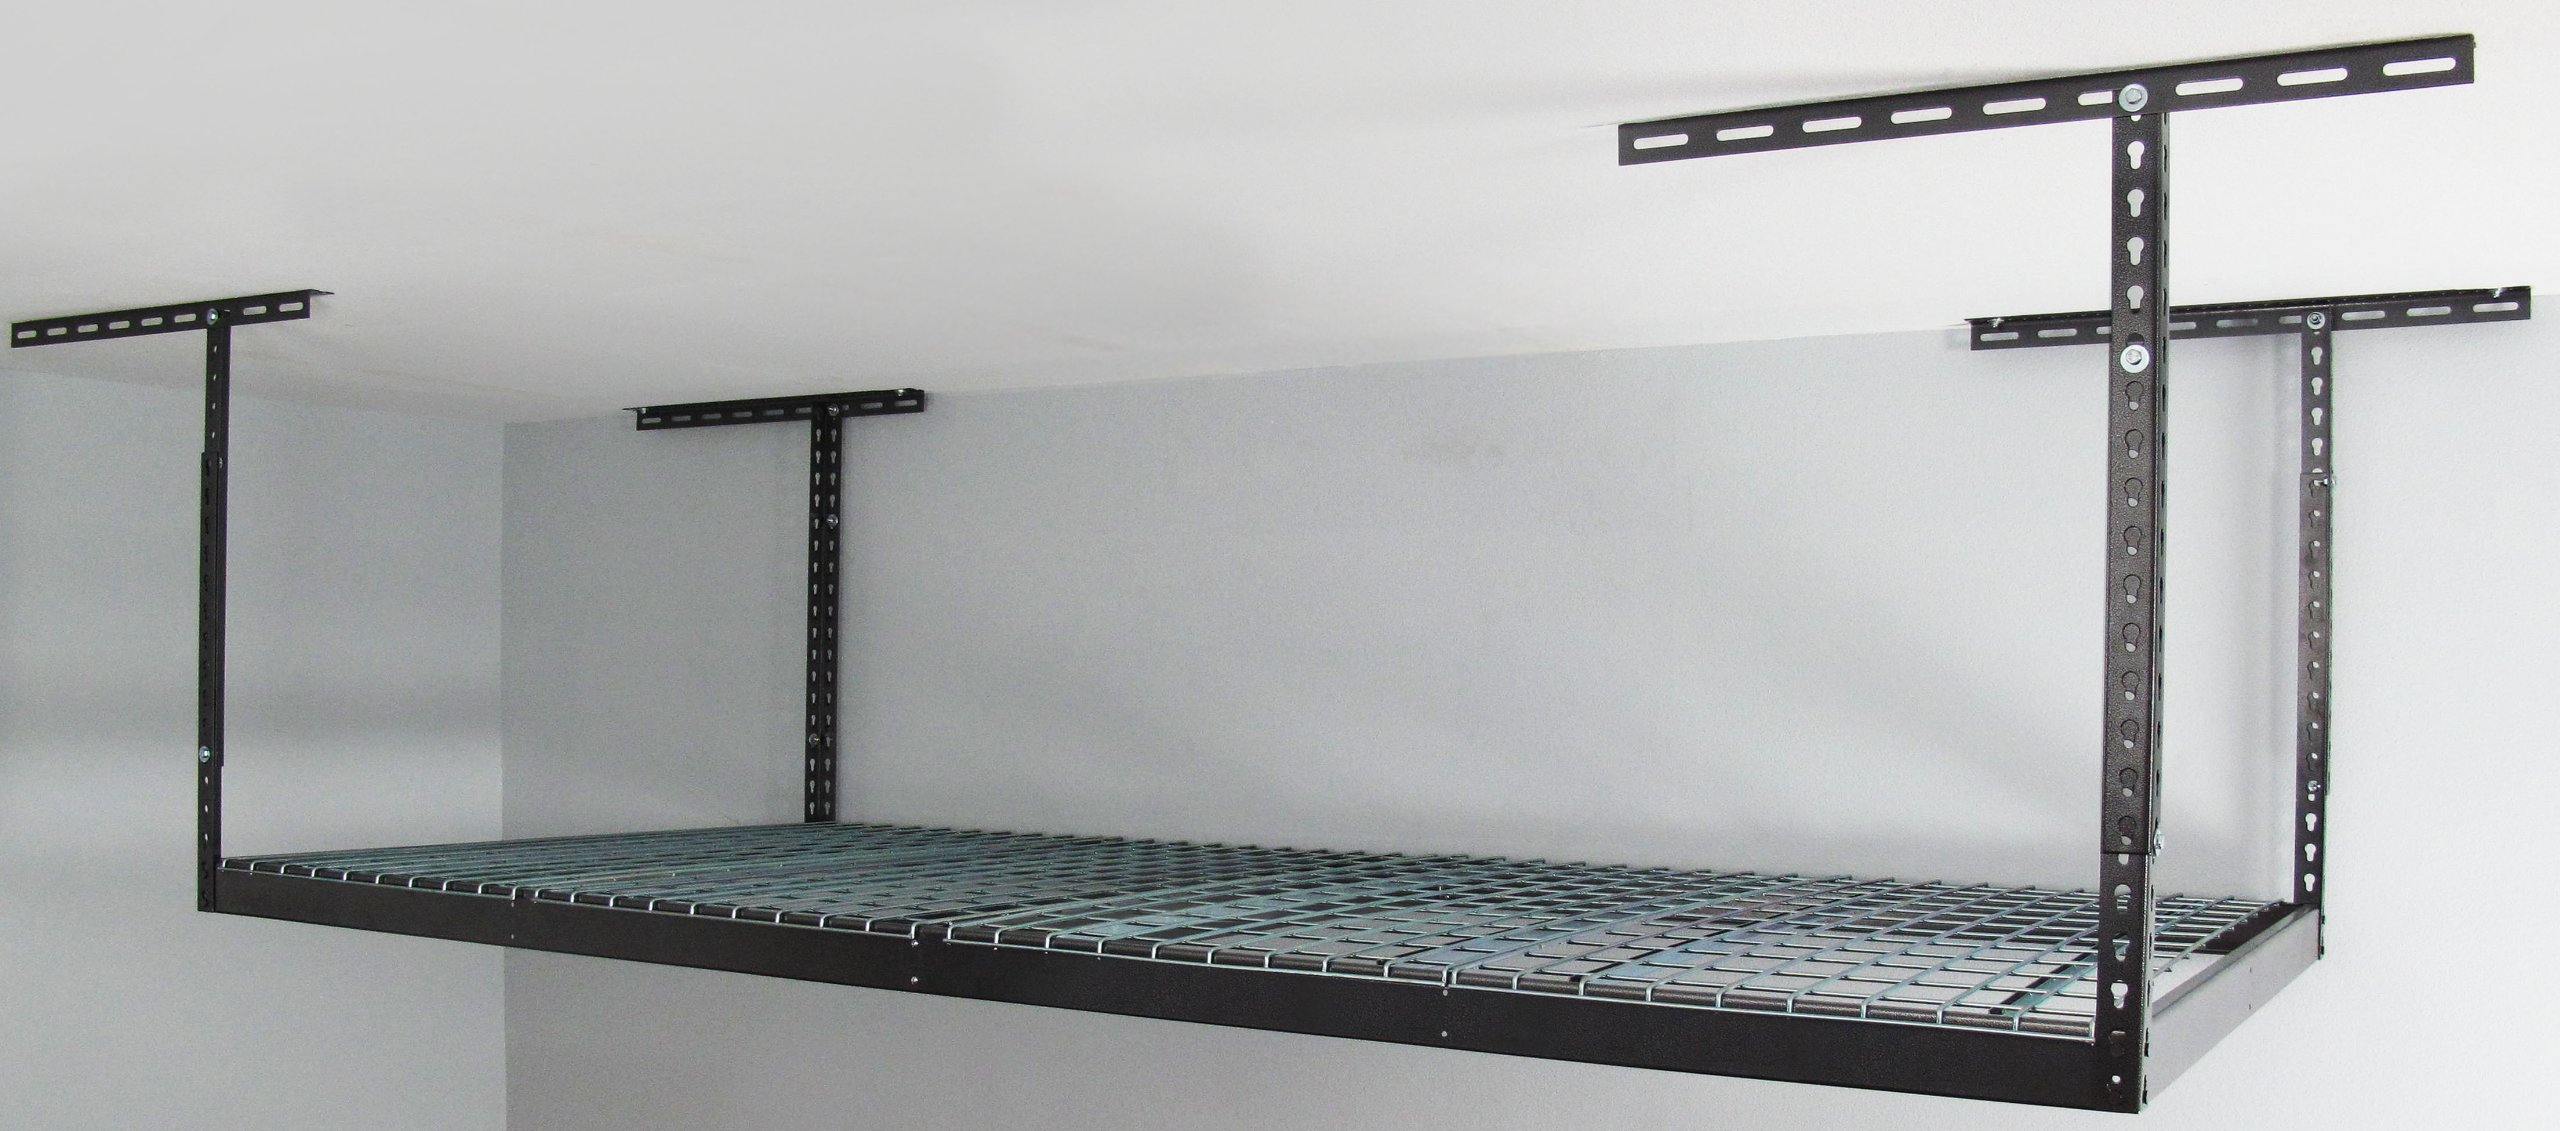 Monsterrax - 4x8 Overhead Garage Storage Rack Heavy Duty (24''-45'' Ceiling Drop) - Hammertone